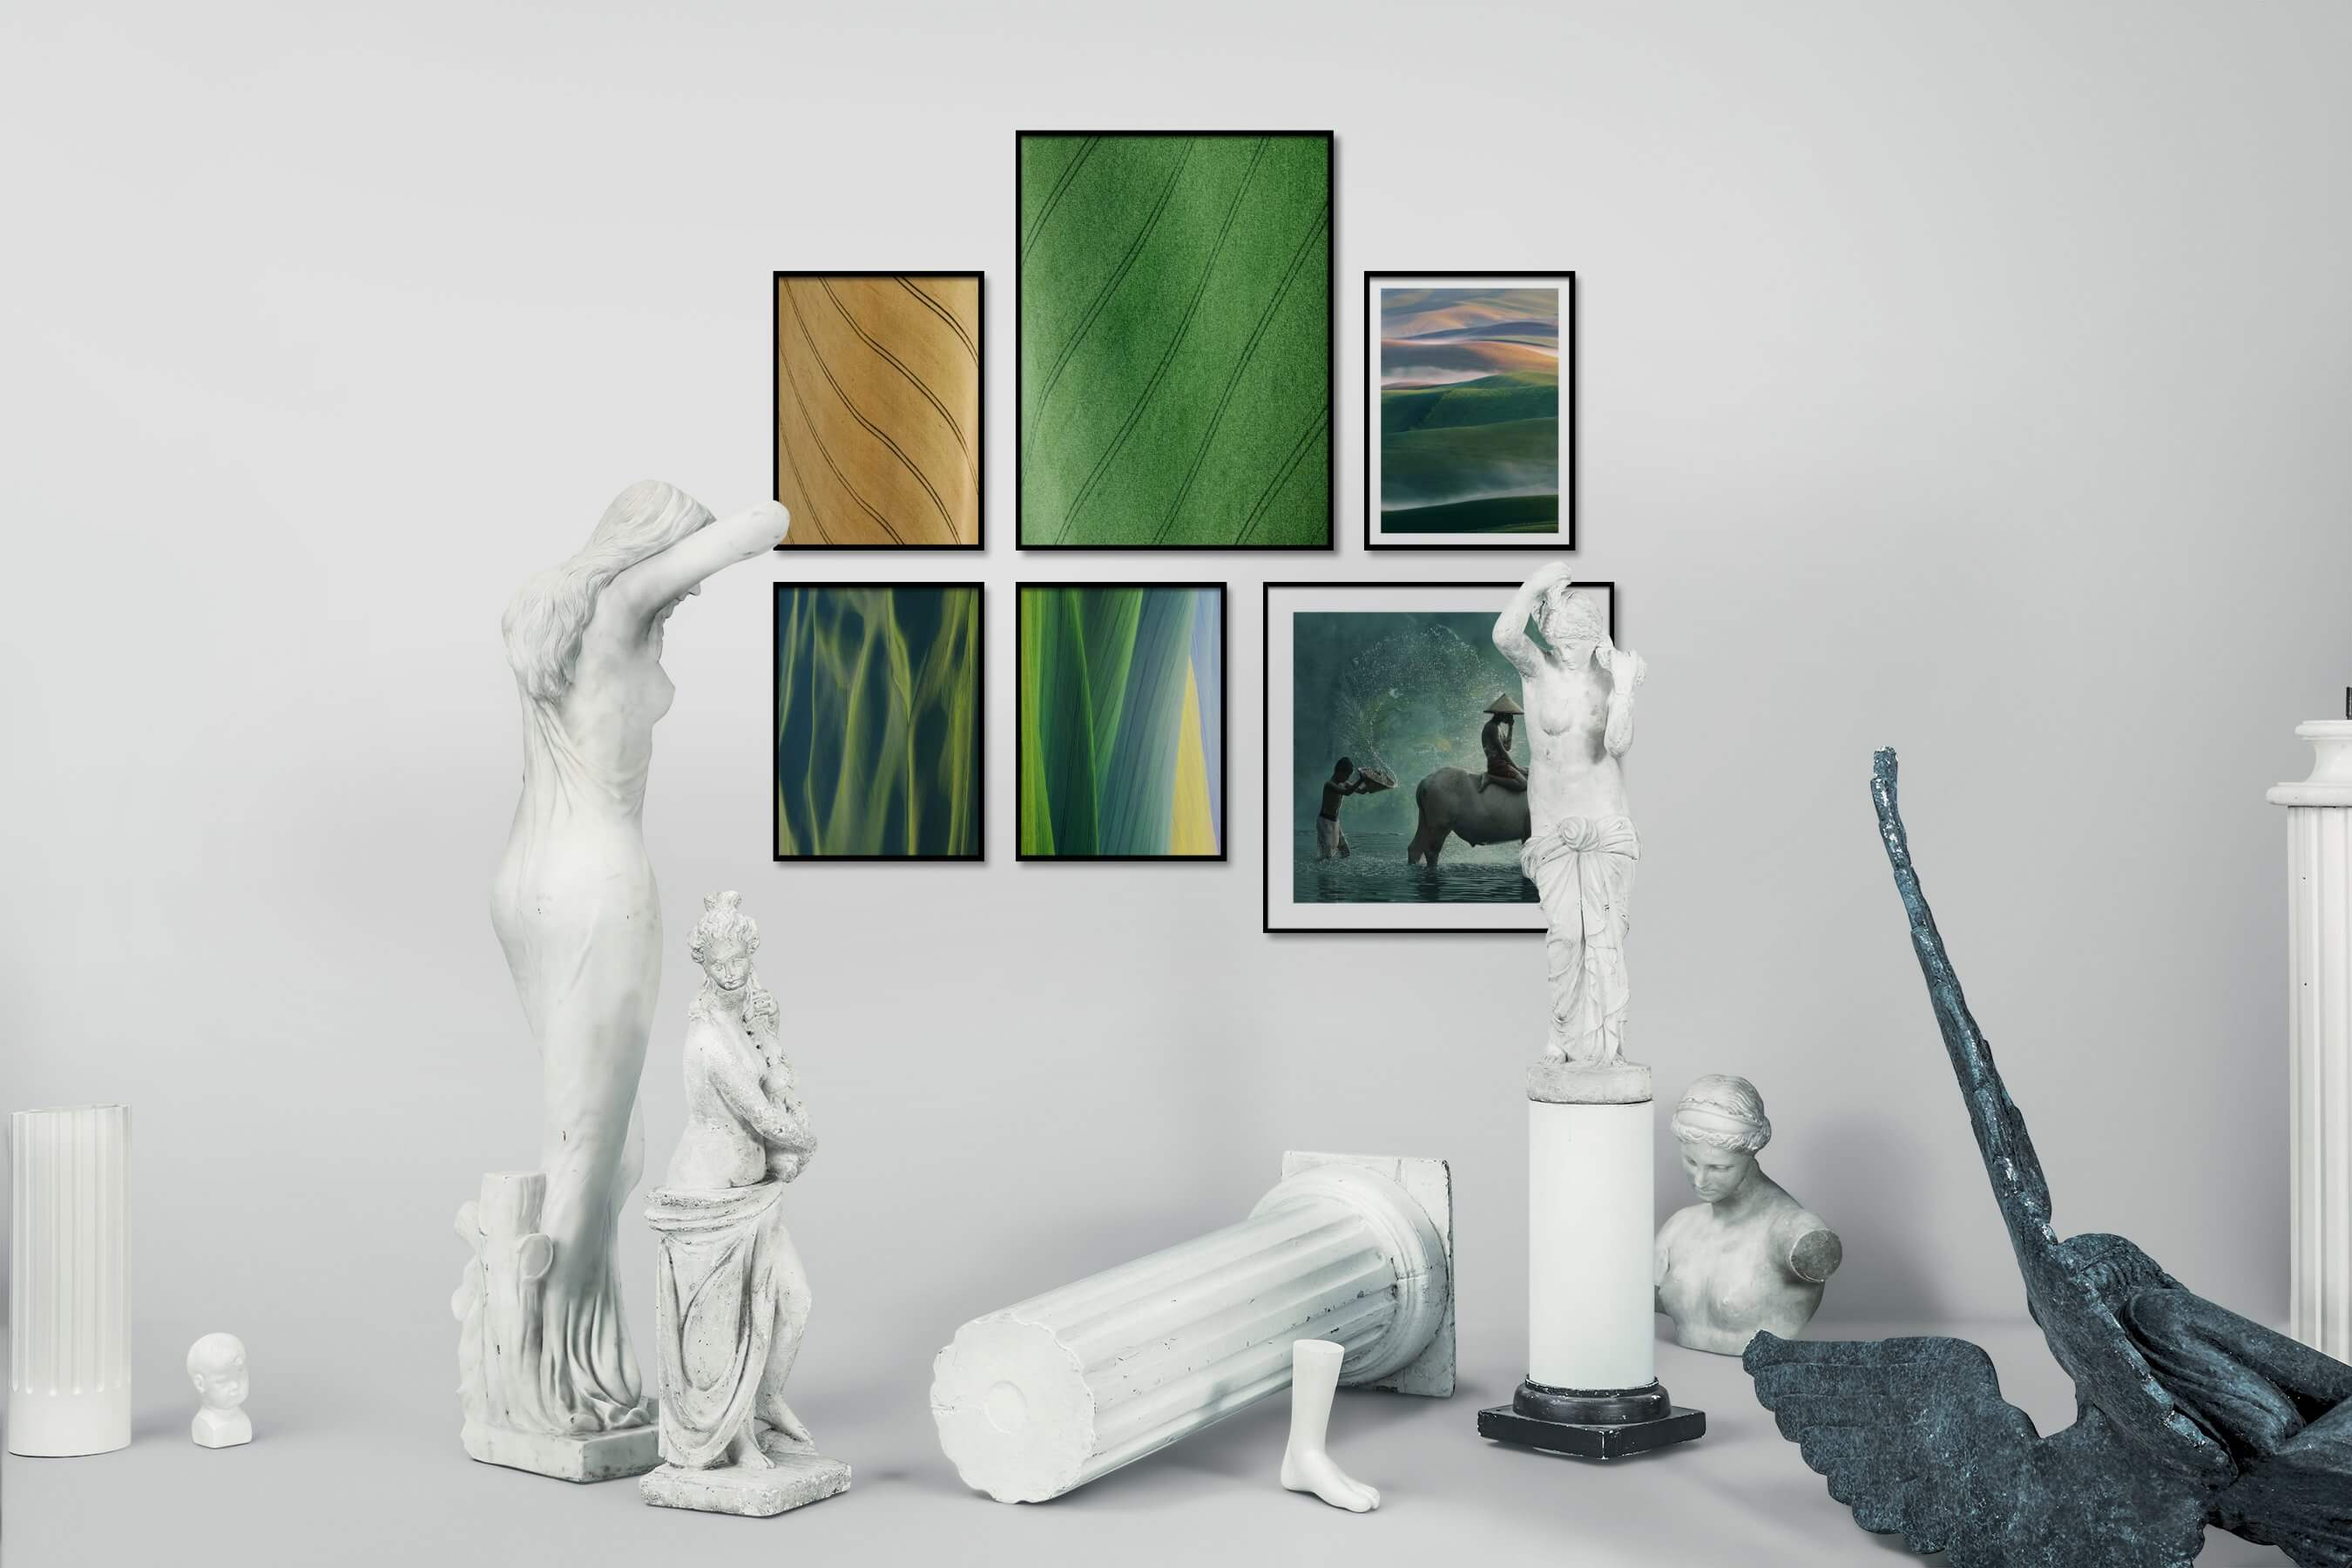 Gallery wall idea with six framed pictures arranged on a wall depicting For the Minimalist, Country Life, For the Moderate, Beach & Water, and Mindfulness